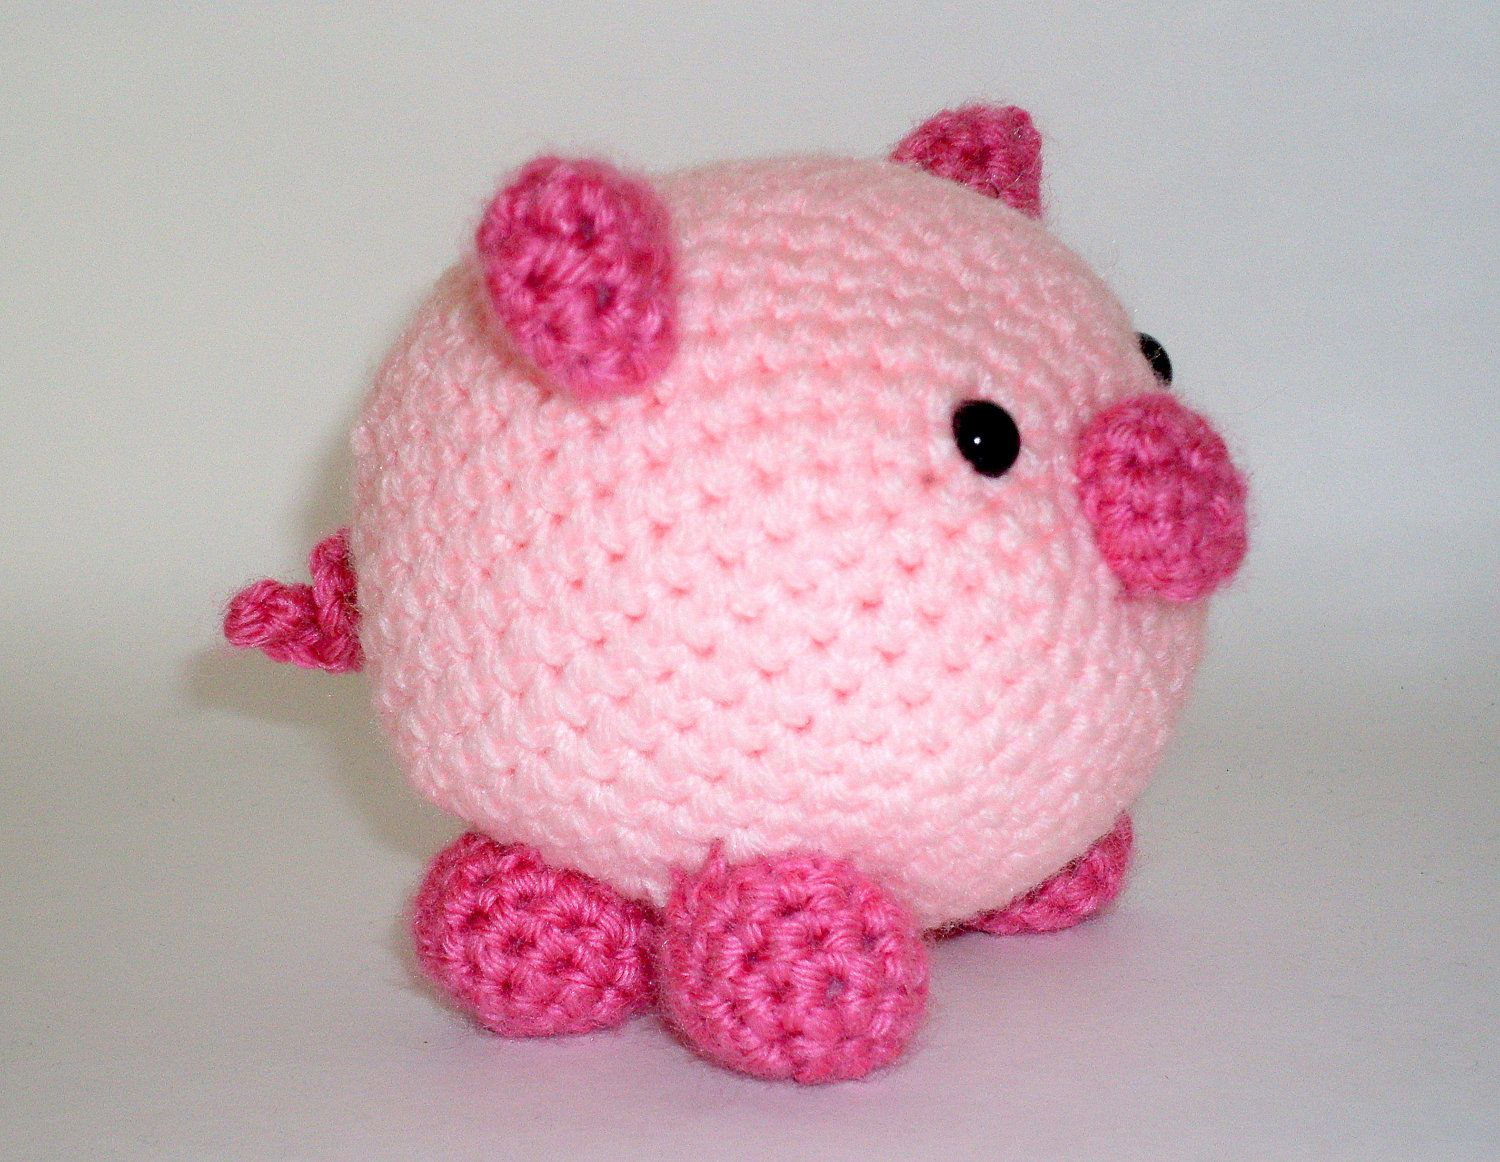 Cute Amigurumi Pigs : Crochet Animals Pig Amigurumi Crochet Stuffed Animal ...